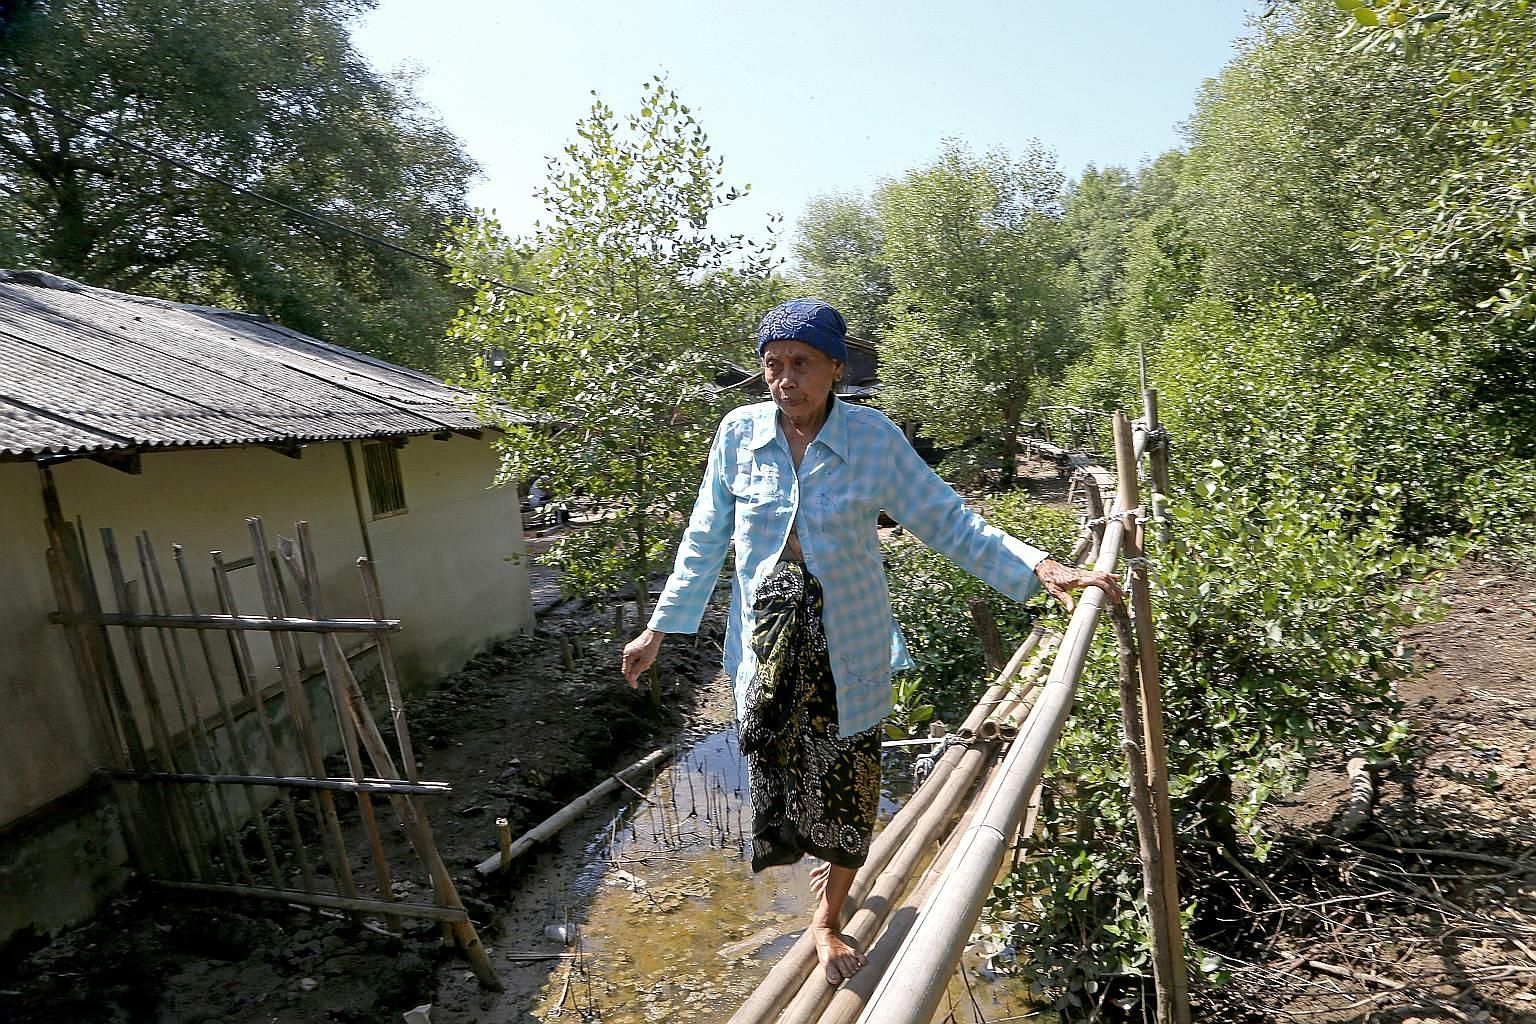 Residents from the now underwater eastern part of Pantai Bahagia village in Bekasi district, just outside Jakarta, moved to the northern and western parts and built elevated bamboo pathways. These pathways become most useful when the water rises to i